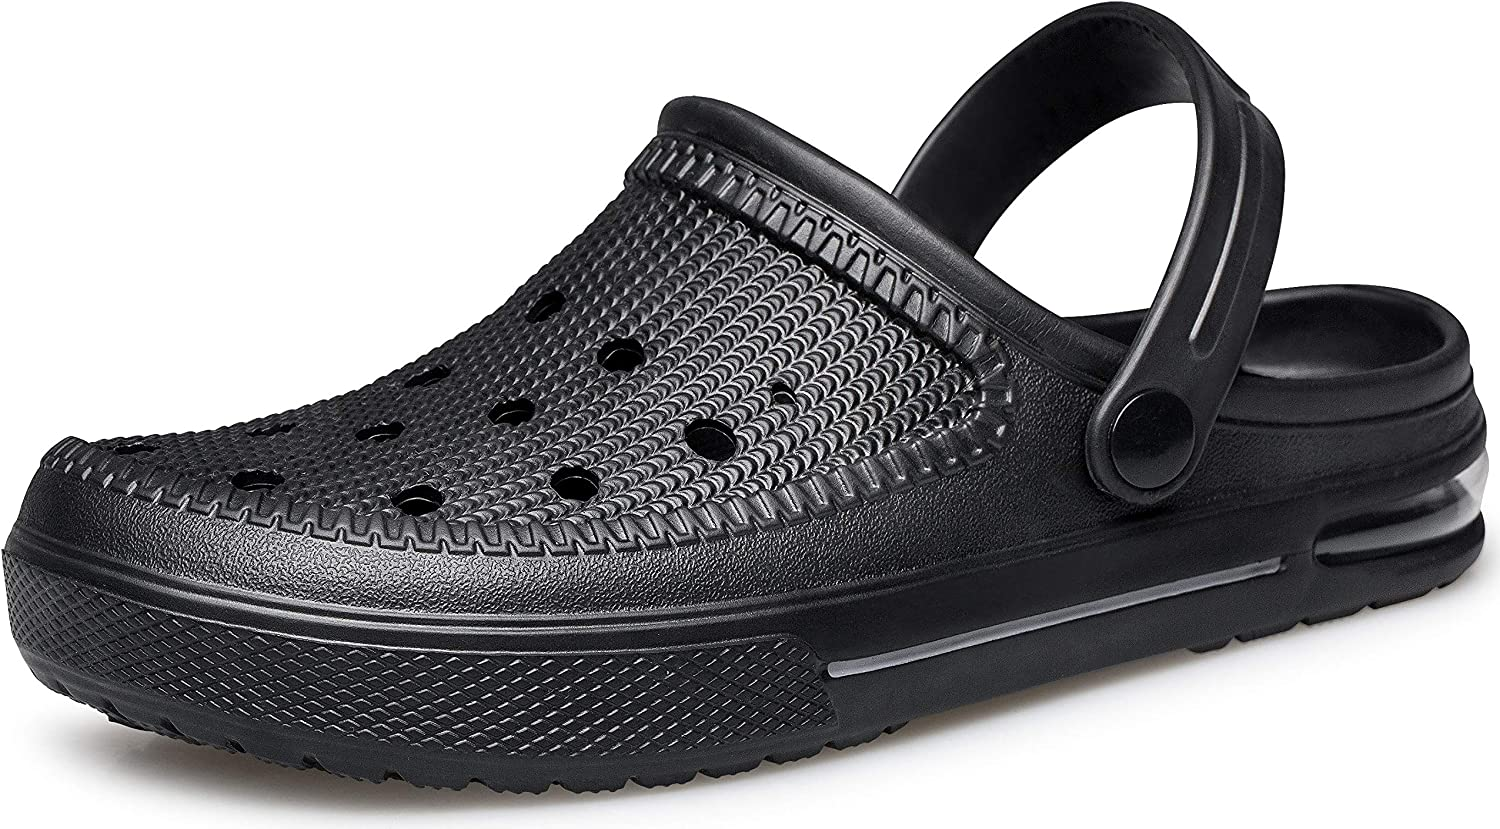 YHOON Unisex Garden Clogs Shoes | Water Shoes | Comfortable Slip on Shoes Air Cushion Slippers